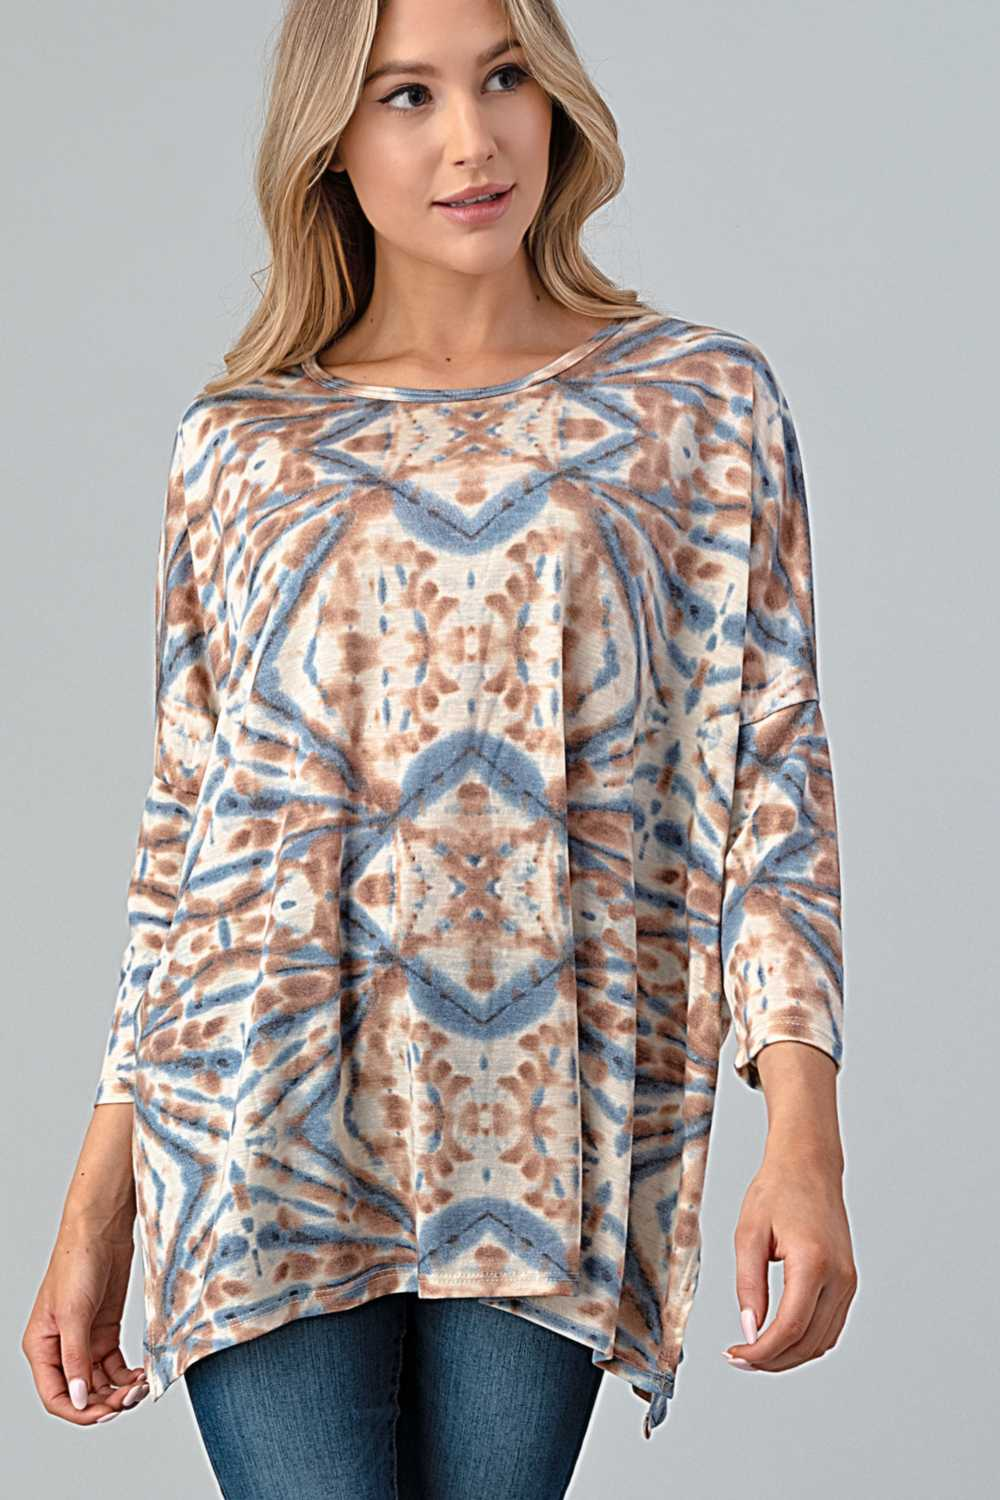 12/20 PRE ORDER TIE DYE DETAILED TUNIC TOP